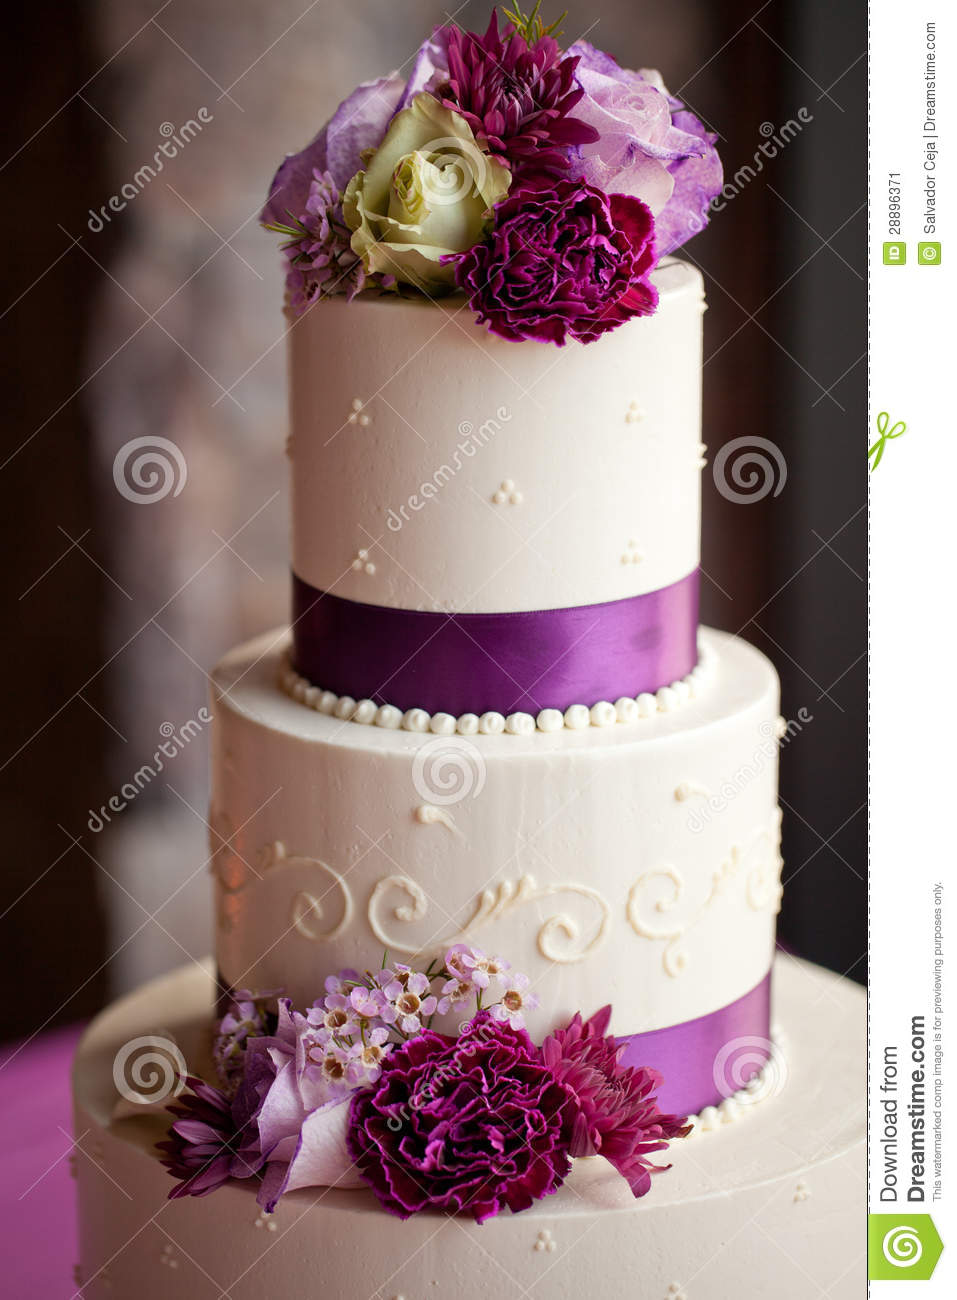 Wedding Cake With Flowers Stock Image Image Of Bride